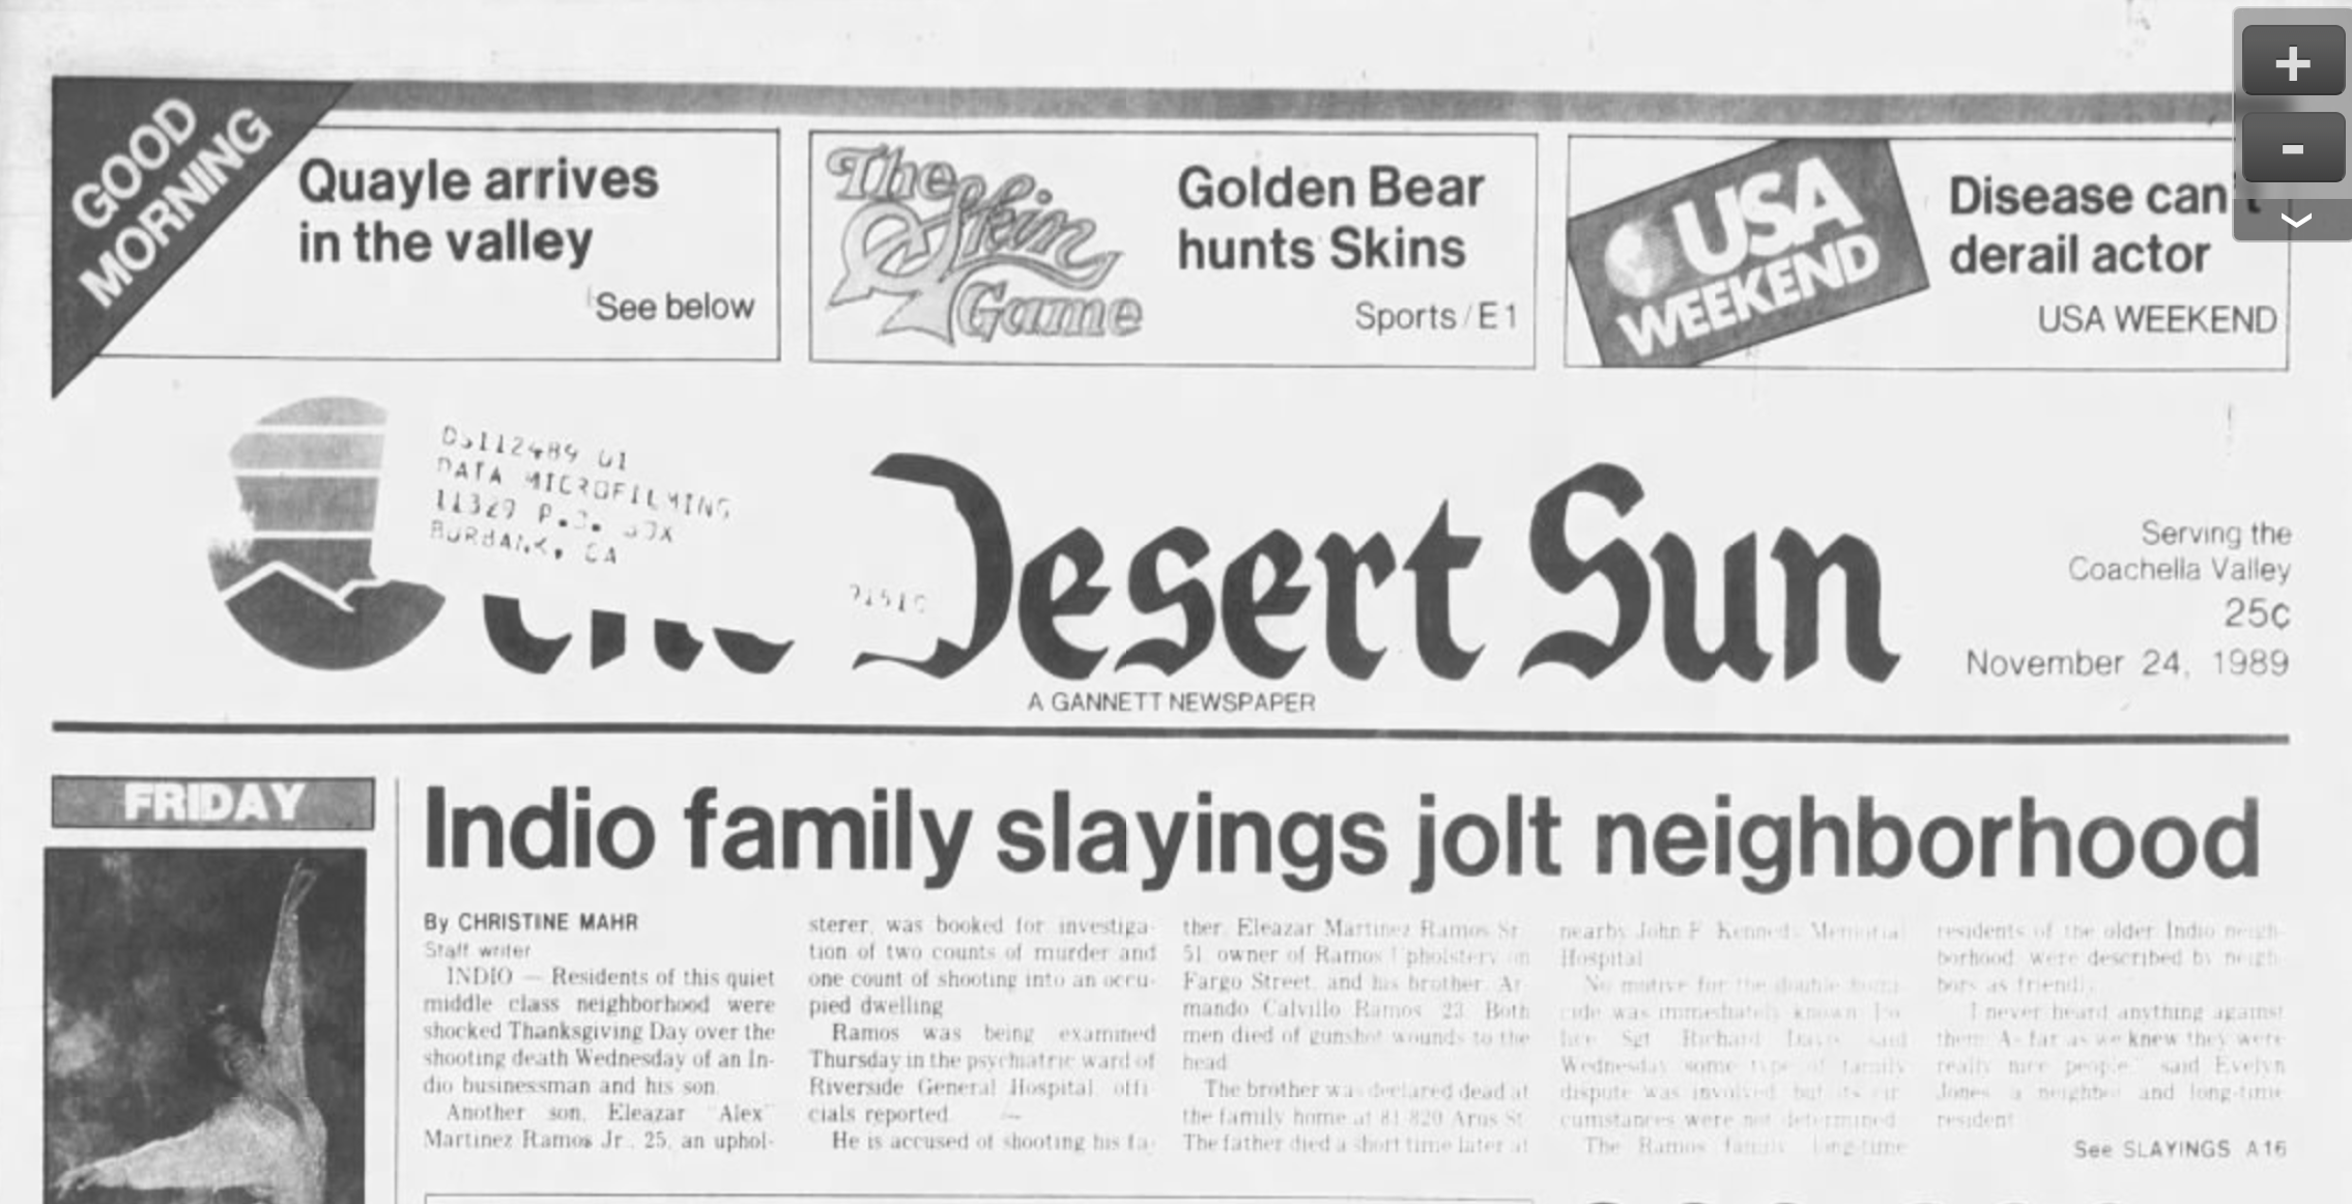 The front page of The Desert Sun on Nov. 24, 1989 depicts news of the double homicide that rocked the family of Indio Mayor Lupe Ramos Amith.